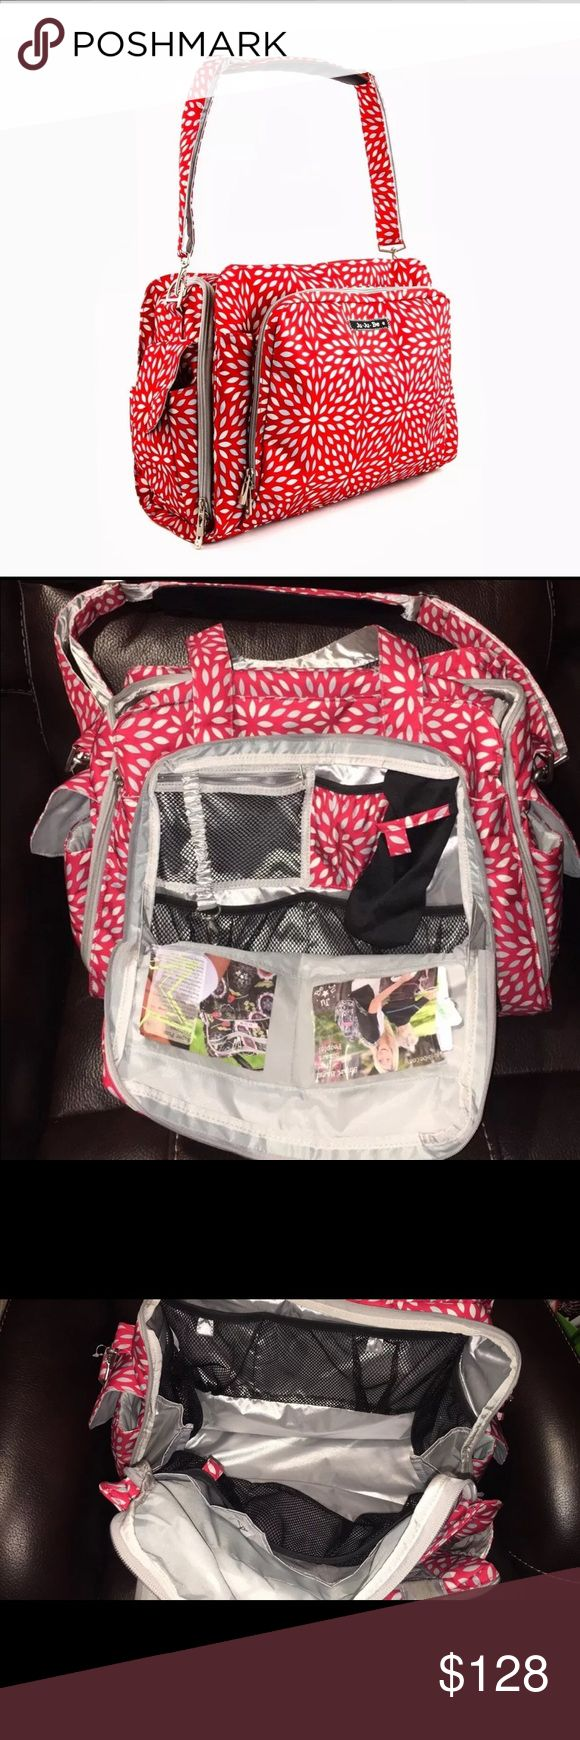 Jujube be prepared diaper bag Jujube be prepared diaper bag red scarlet. Like new, great condition, only used a few times JuJu Bags Baby Bags